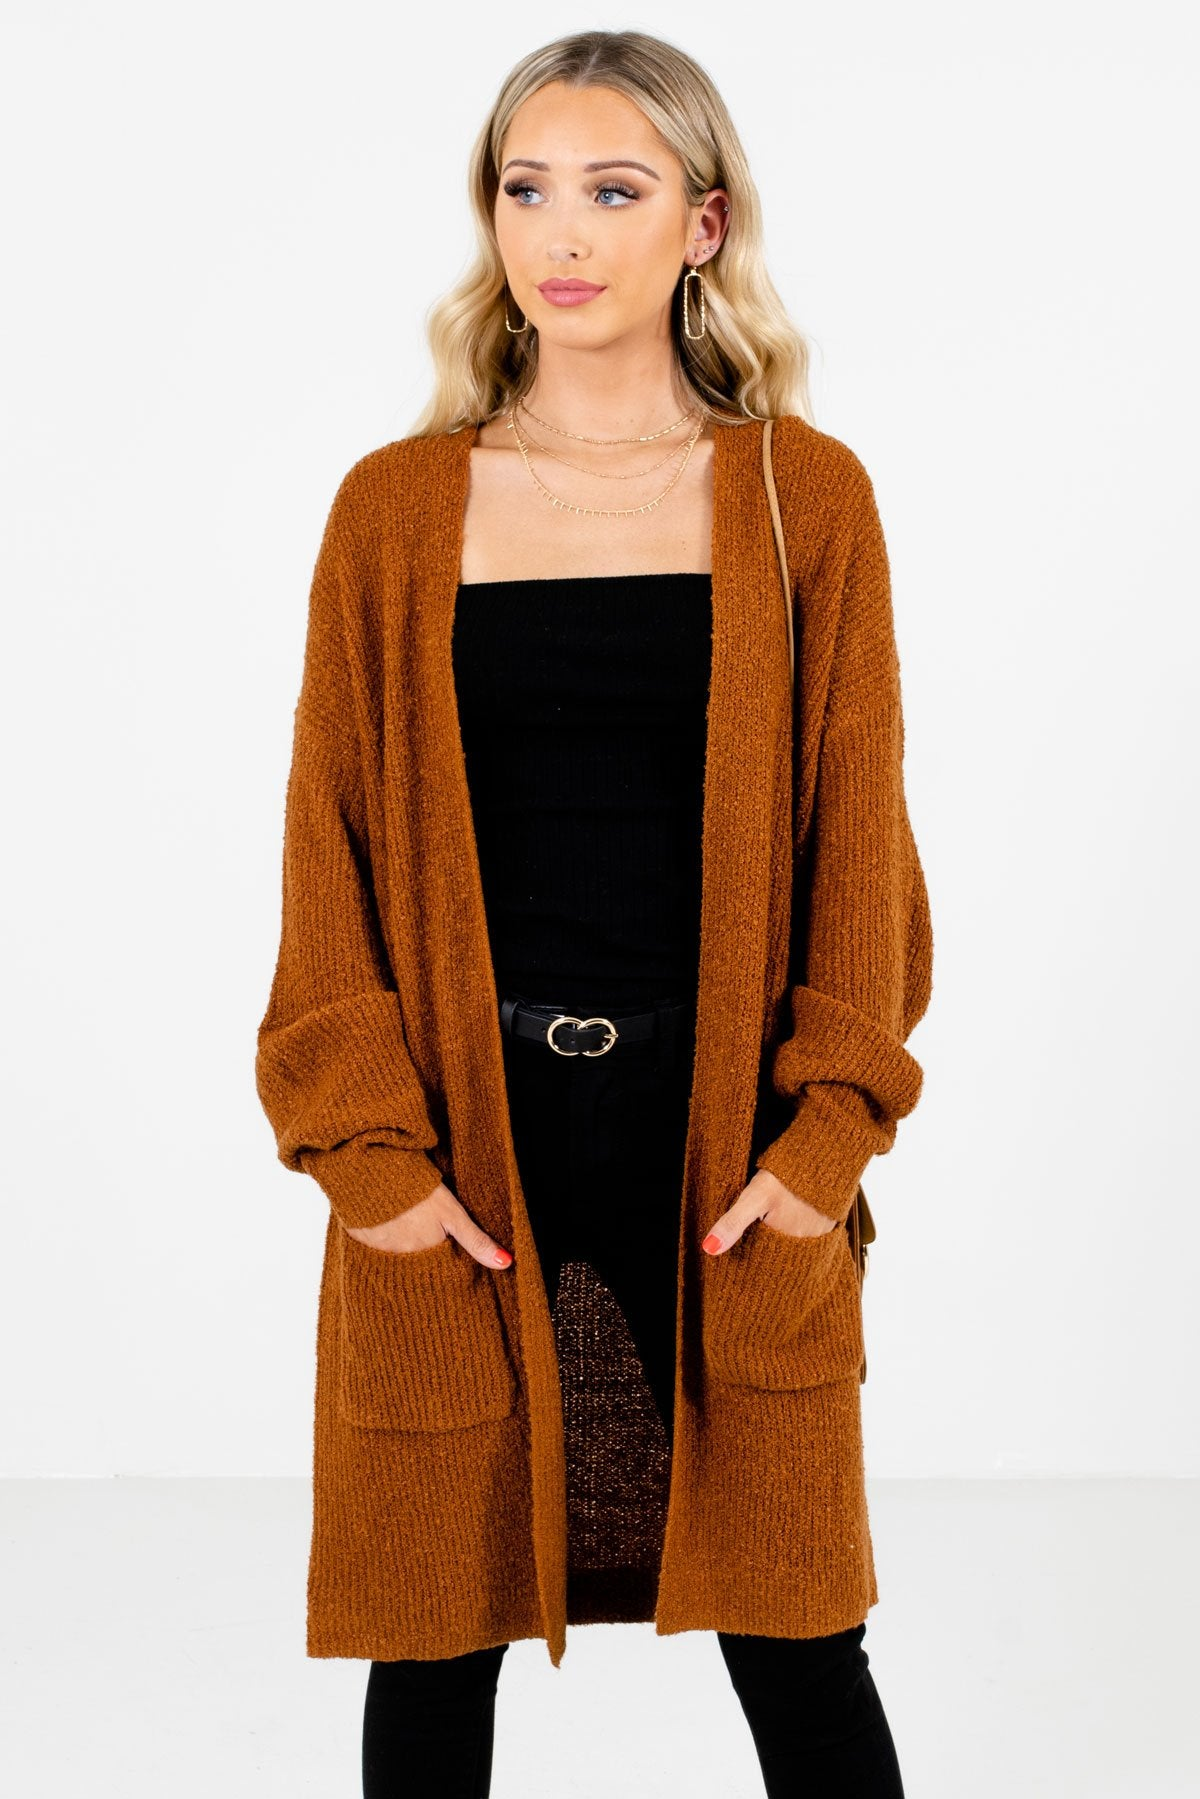 Rust Orange High-Quality Knit Material Boutique Cardigans for Women